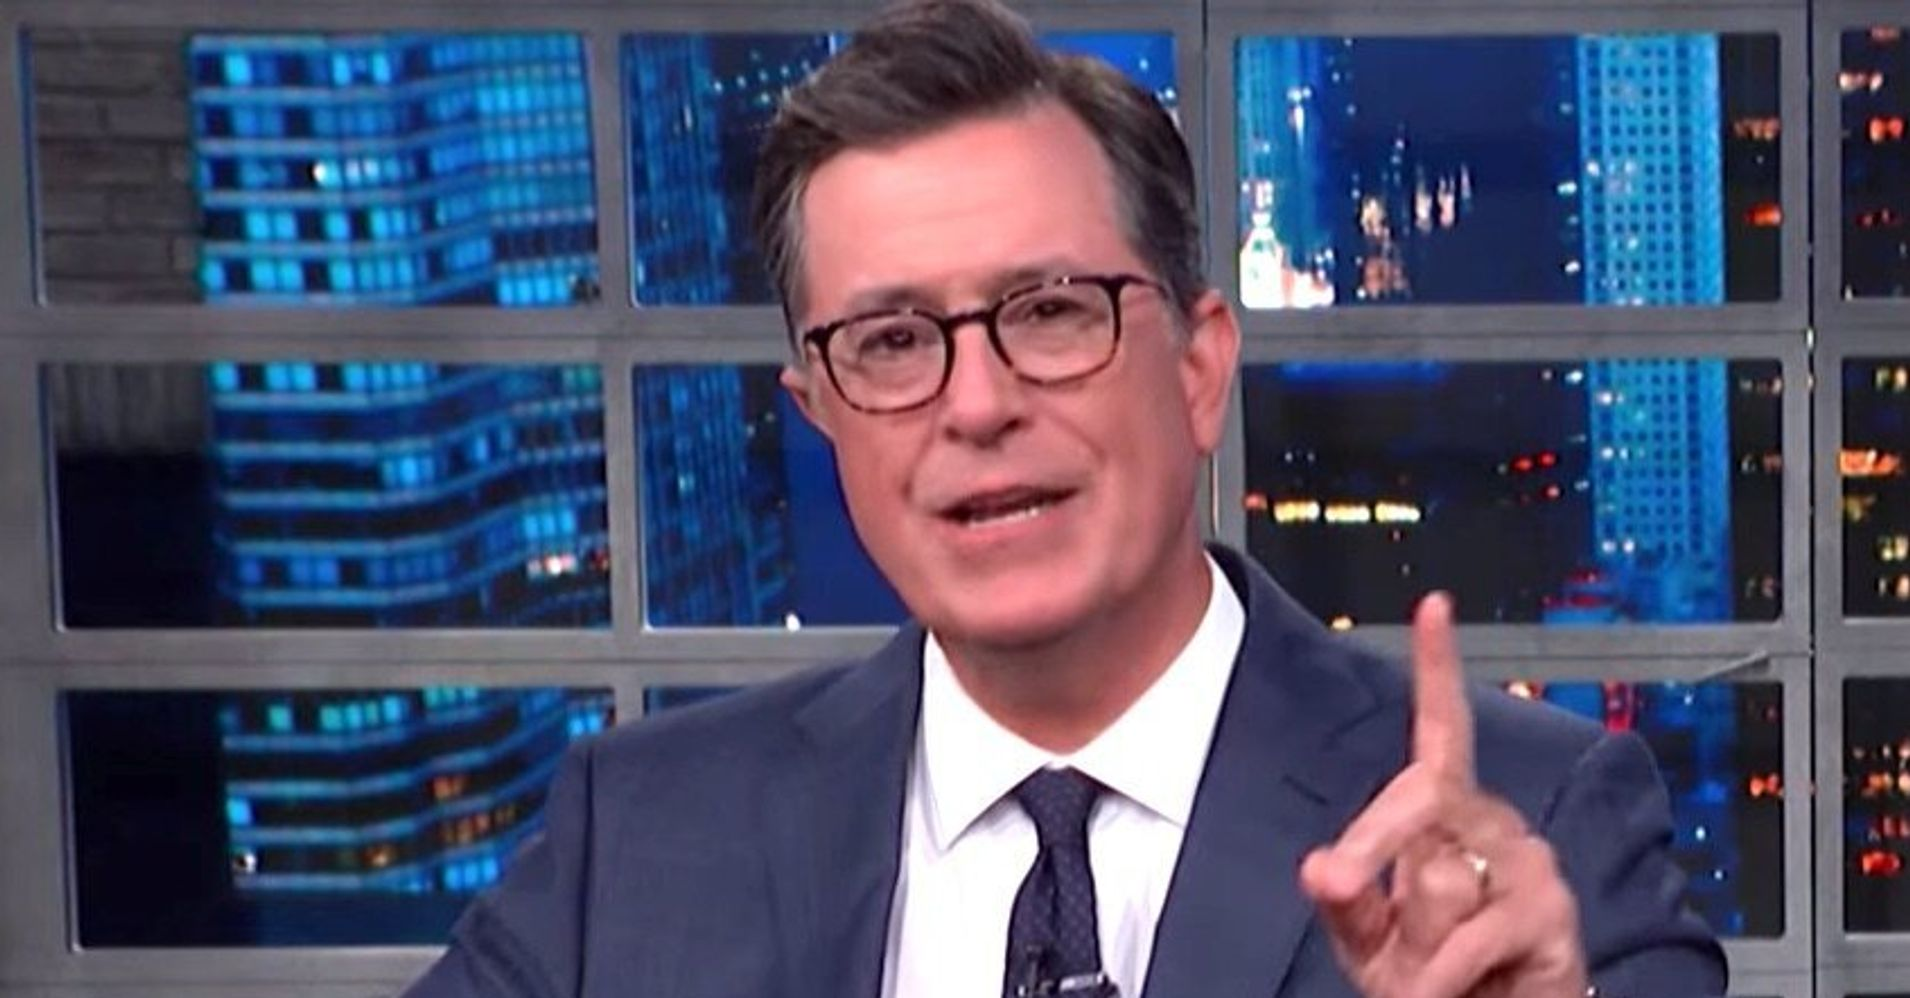 Westlake Legal Group 5d2e8a752400009d17935b88 Colbert Gives Trump A Reminder Of His Own Ugly Past: 'Racism Is Your Brand!'